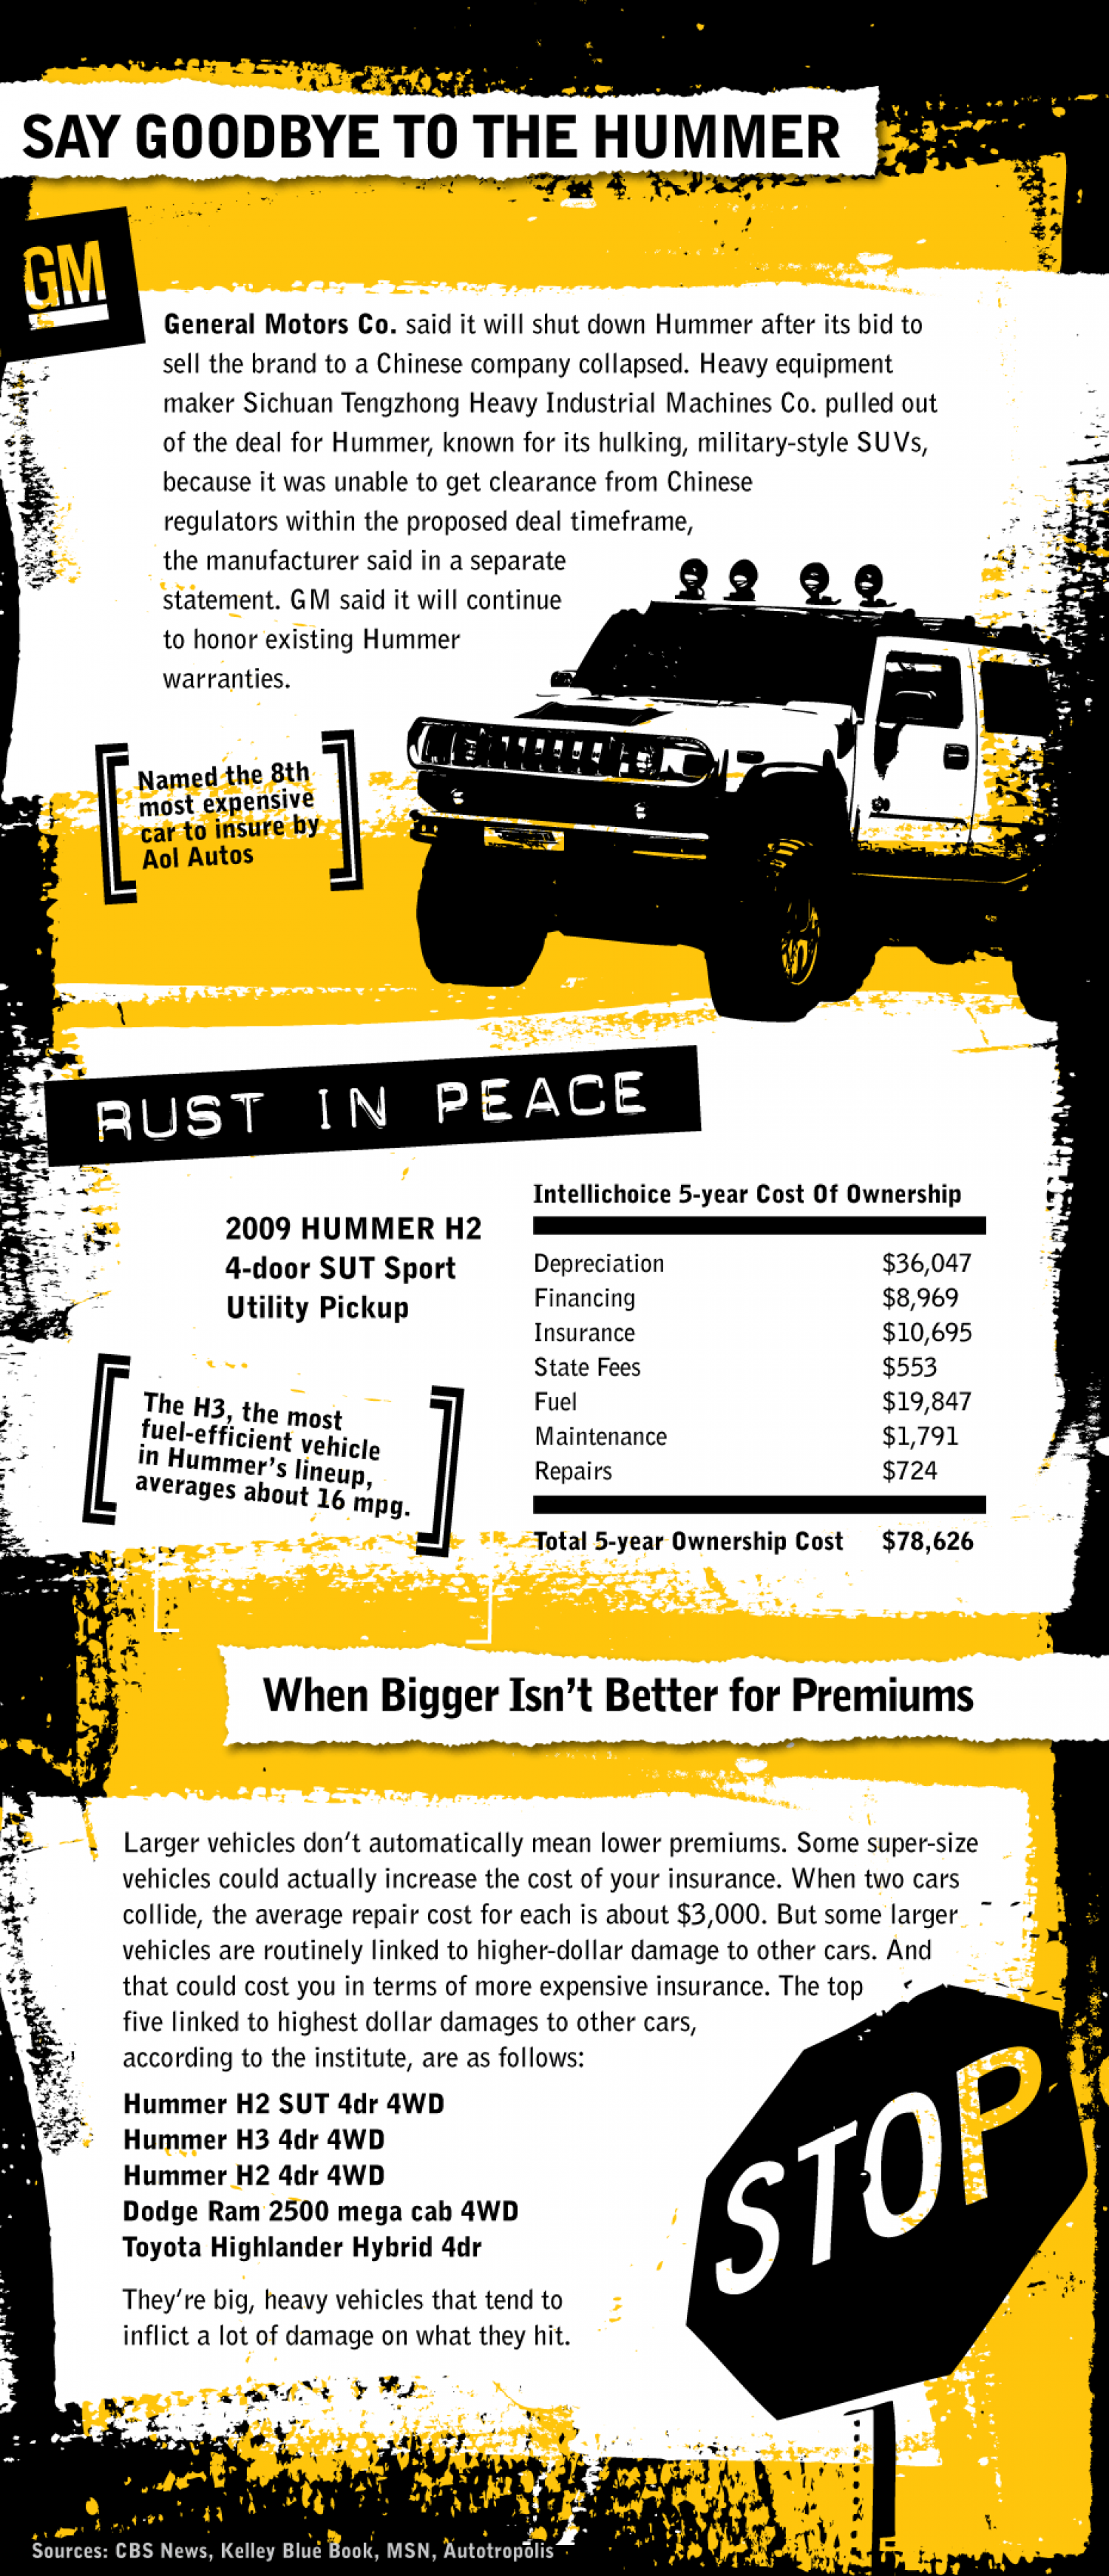 Say Goodbye to the Hummer Infographic